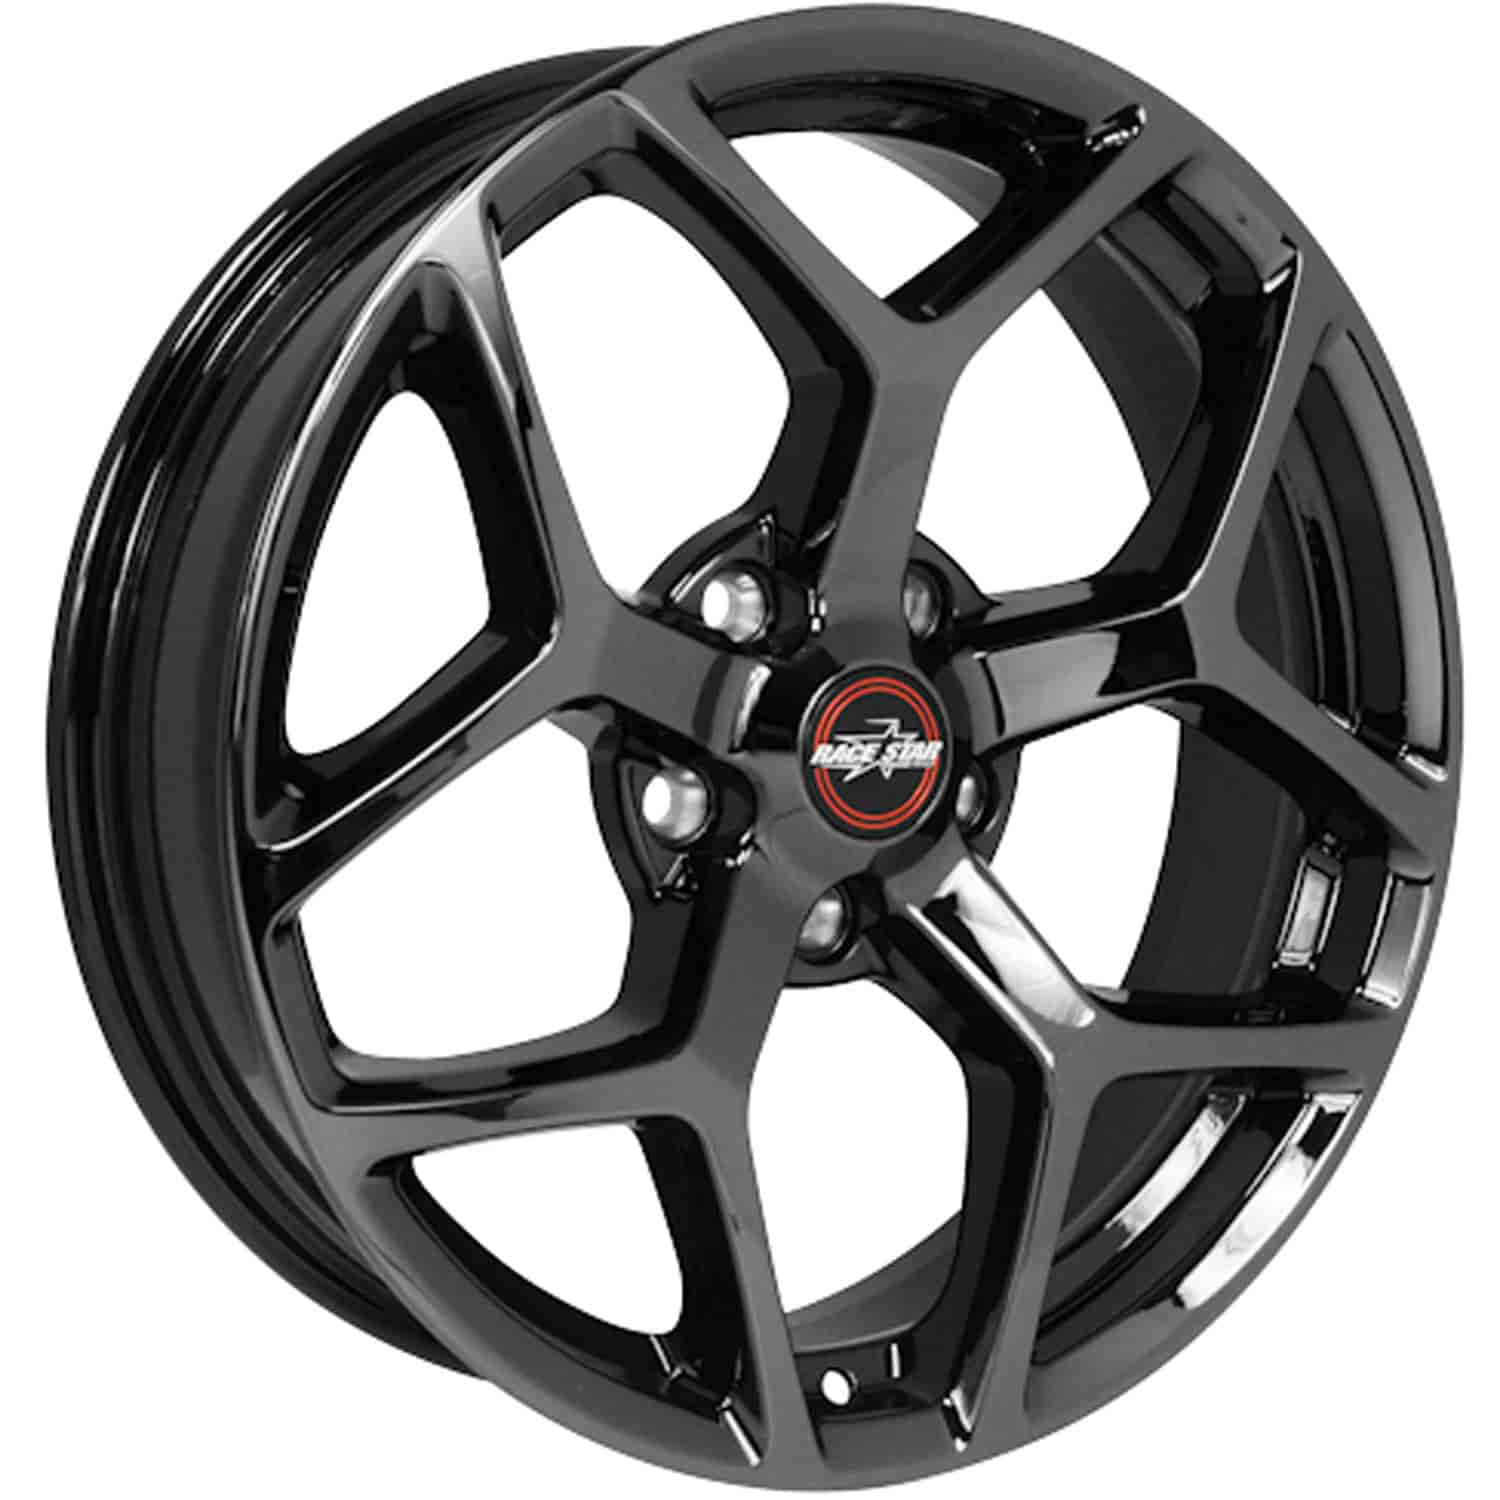 Race Star Wheels 95-850246BC